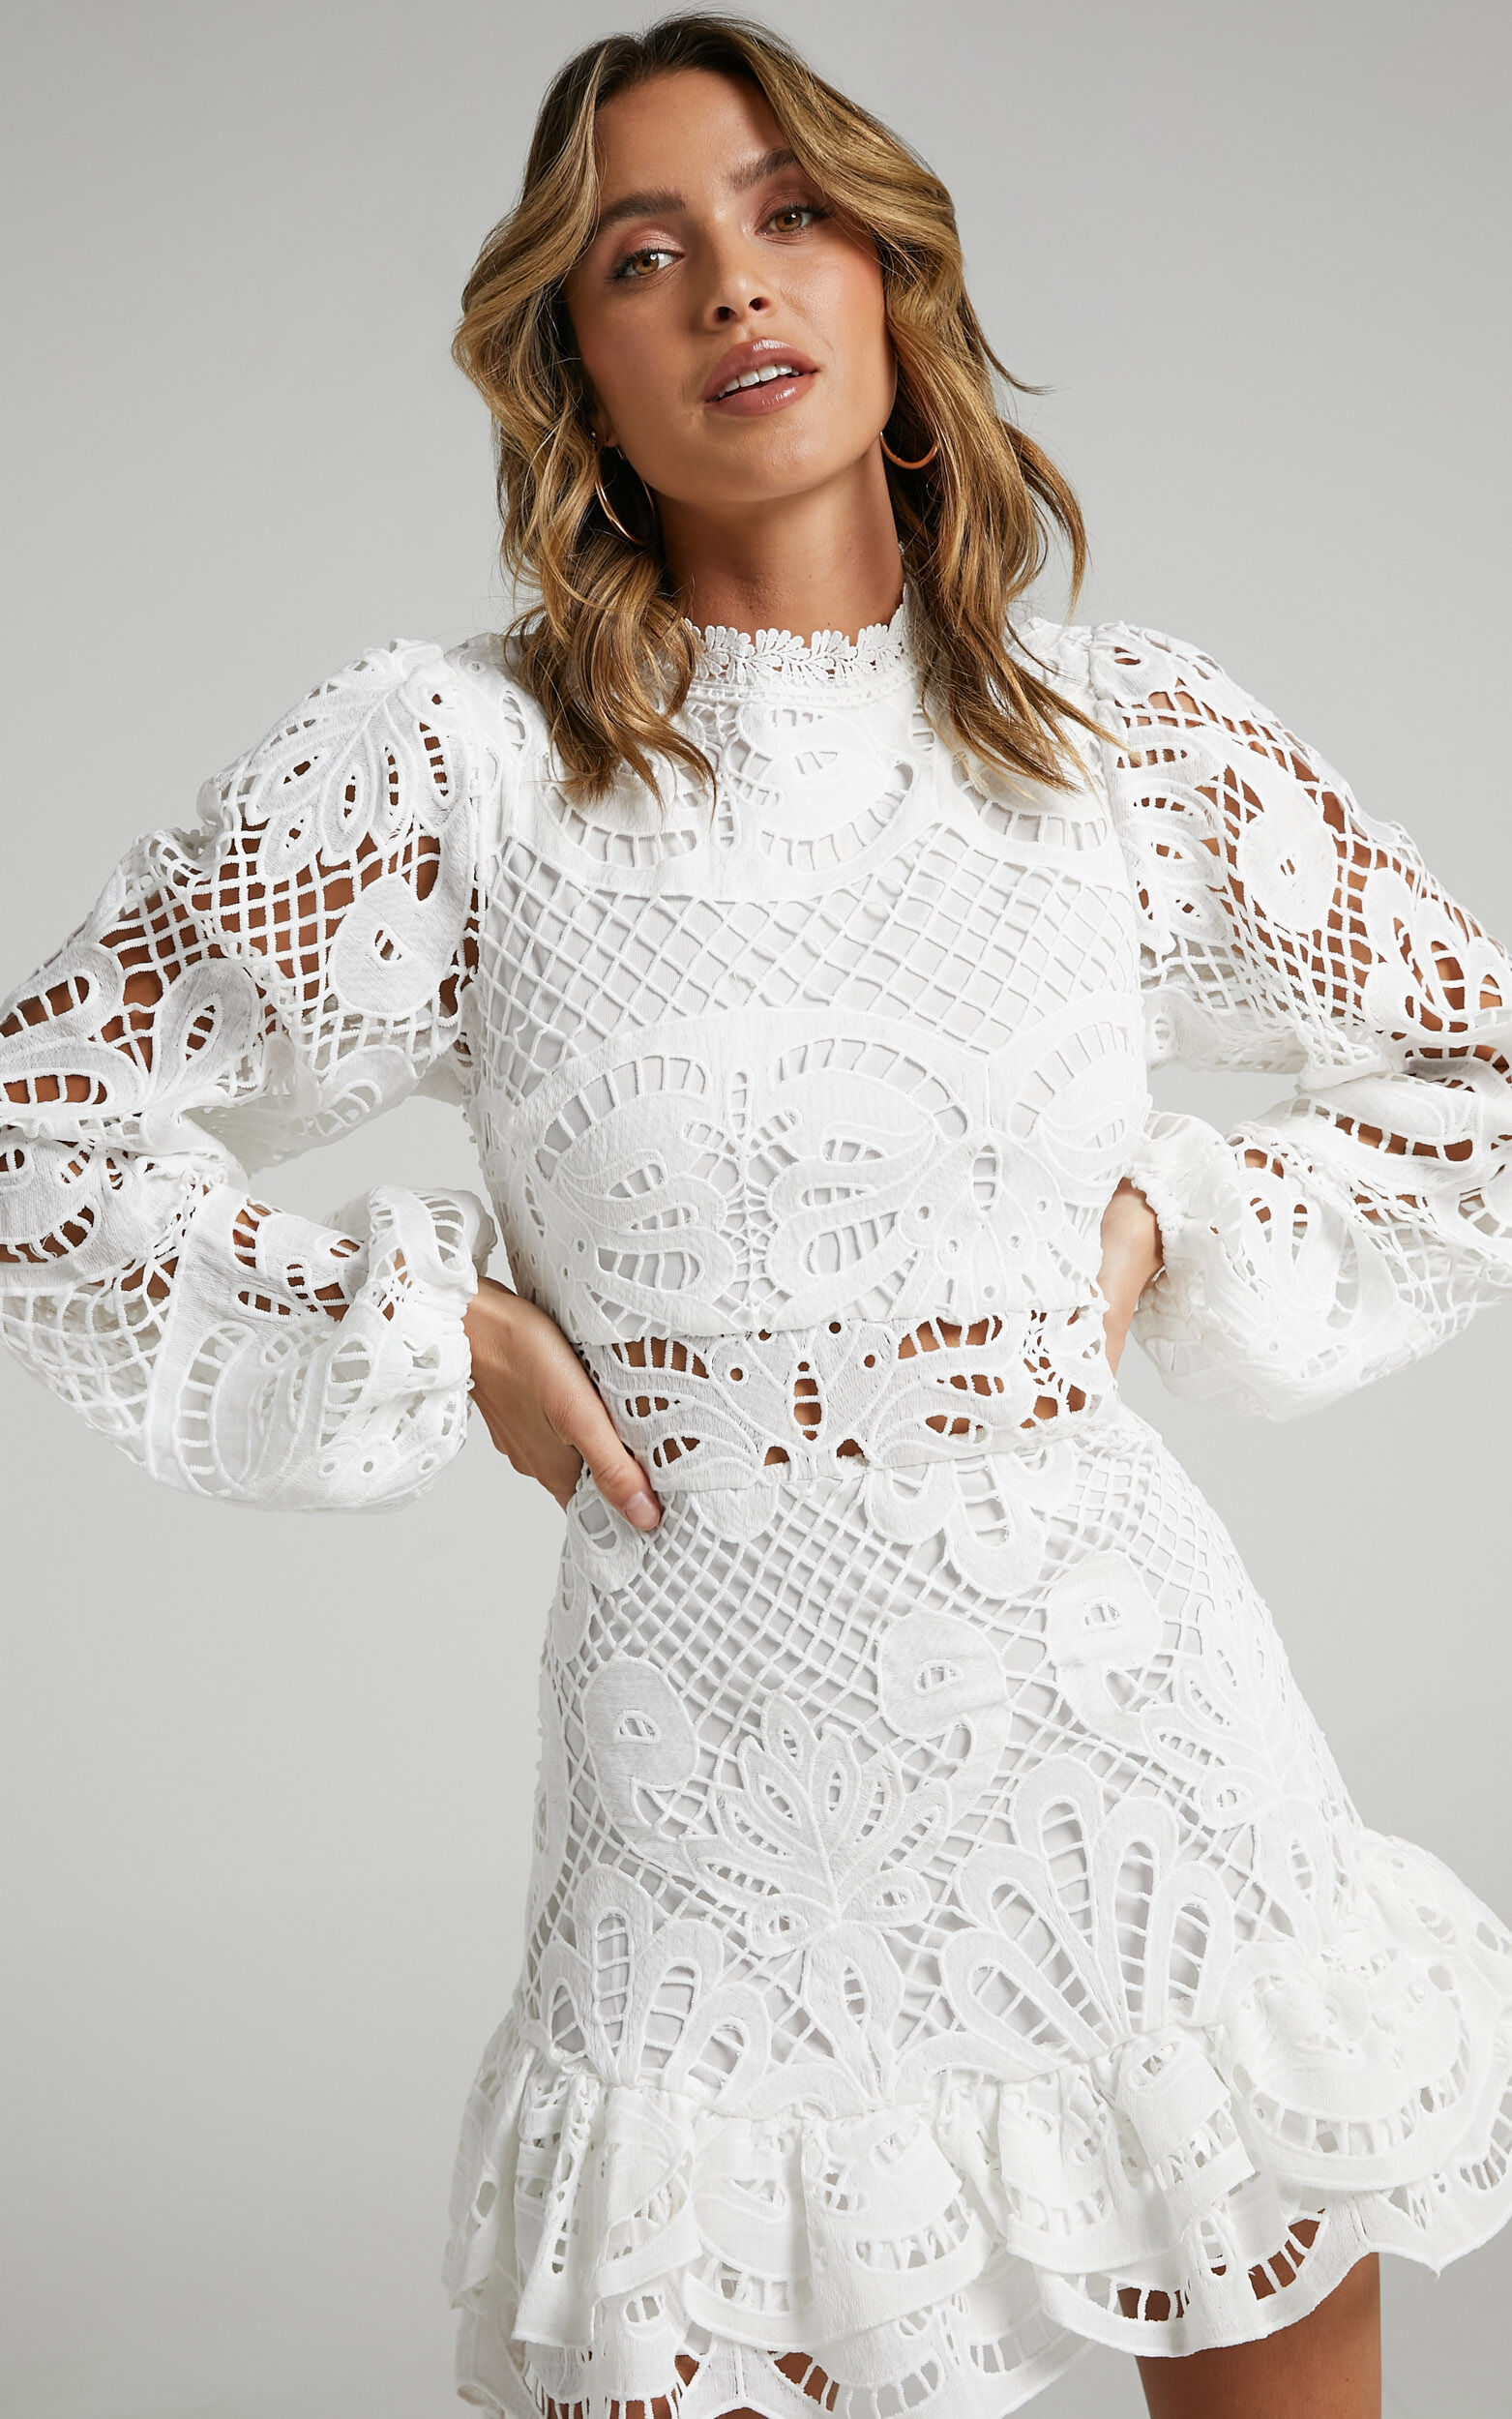 Kiss Me Now Dress in White Lace - 06, WHT3, super-hi-res image number null